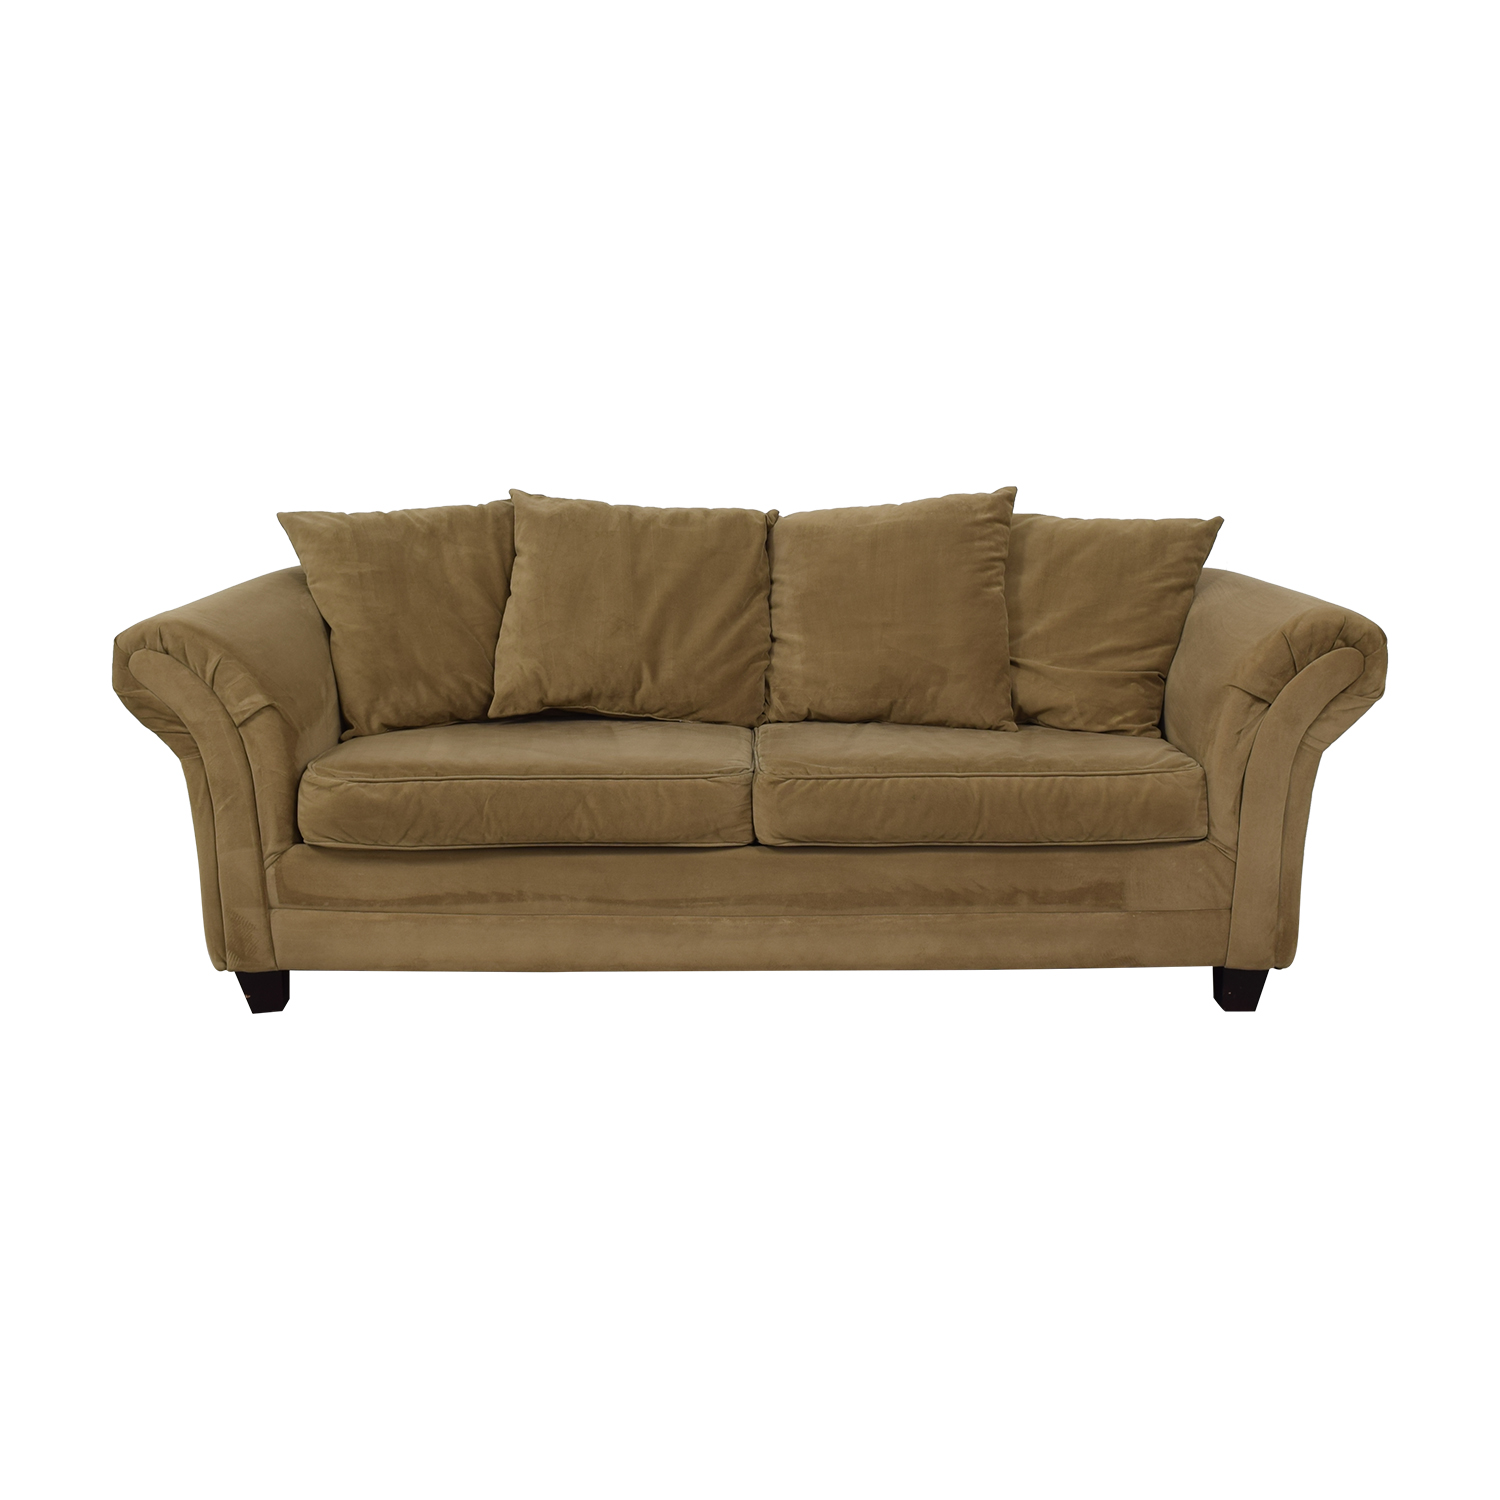 shop Bob's Discount Furniture Bella Tan Single Cushion Sofa Bob's Discount Furniture Classic Sofas